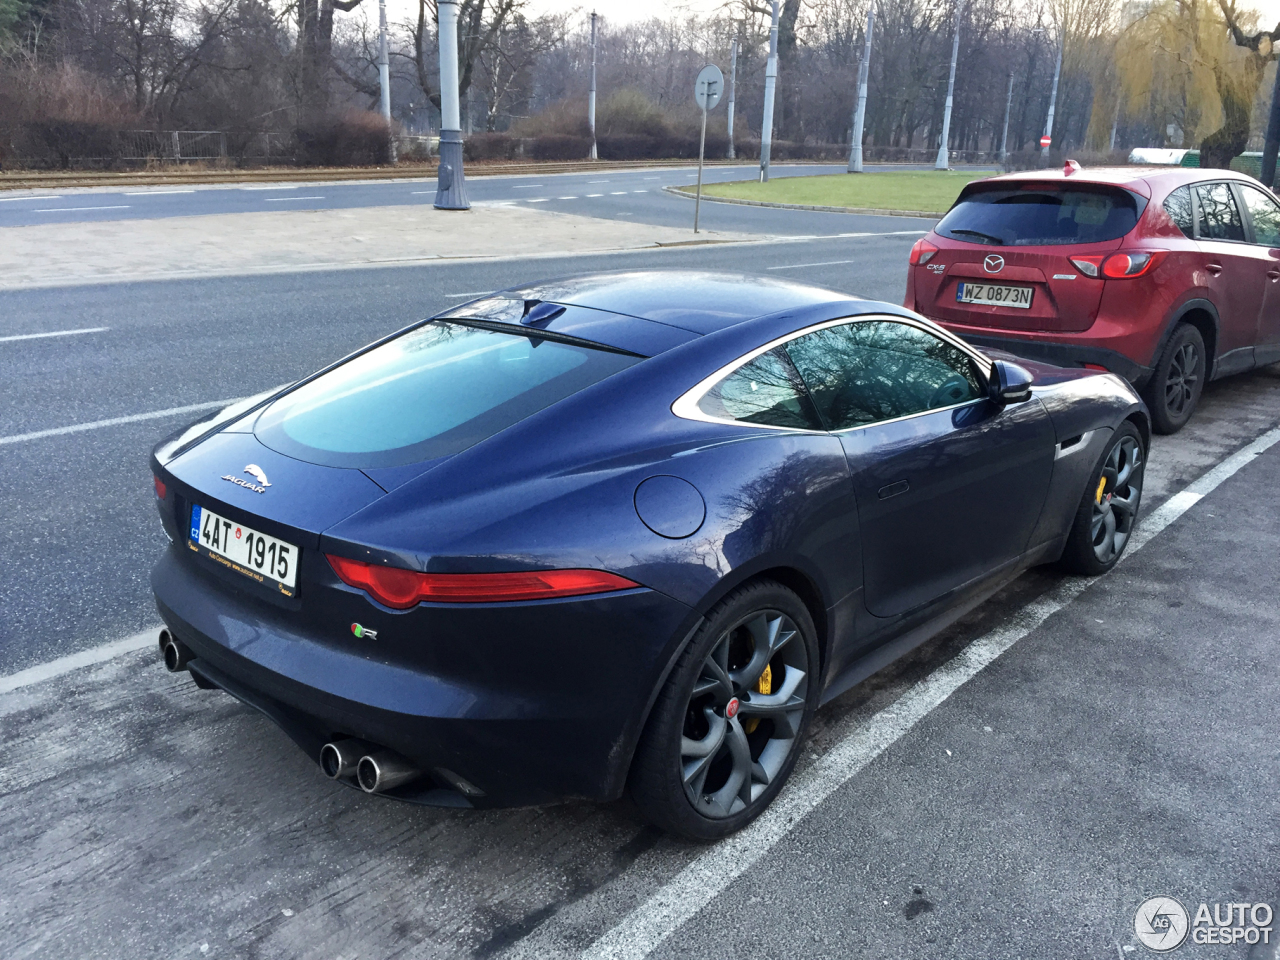 Jaguar f type r coup 30 december 2016 autogespot - Jaguar f type r coupe prix ...